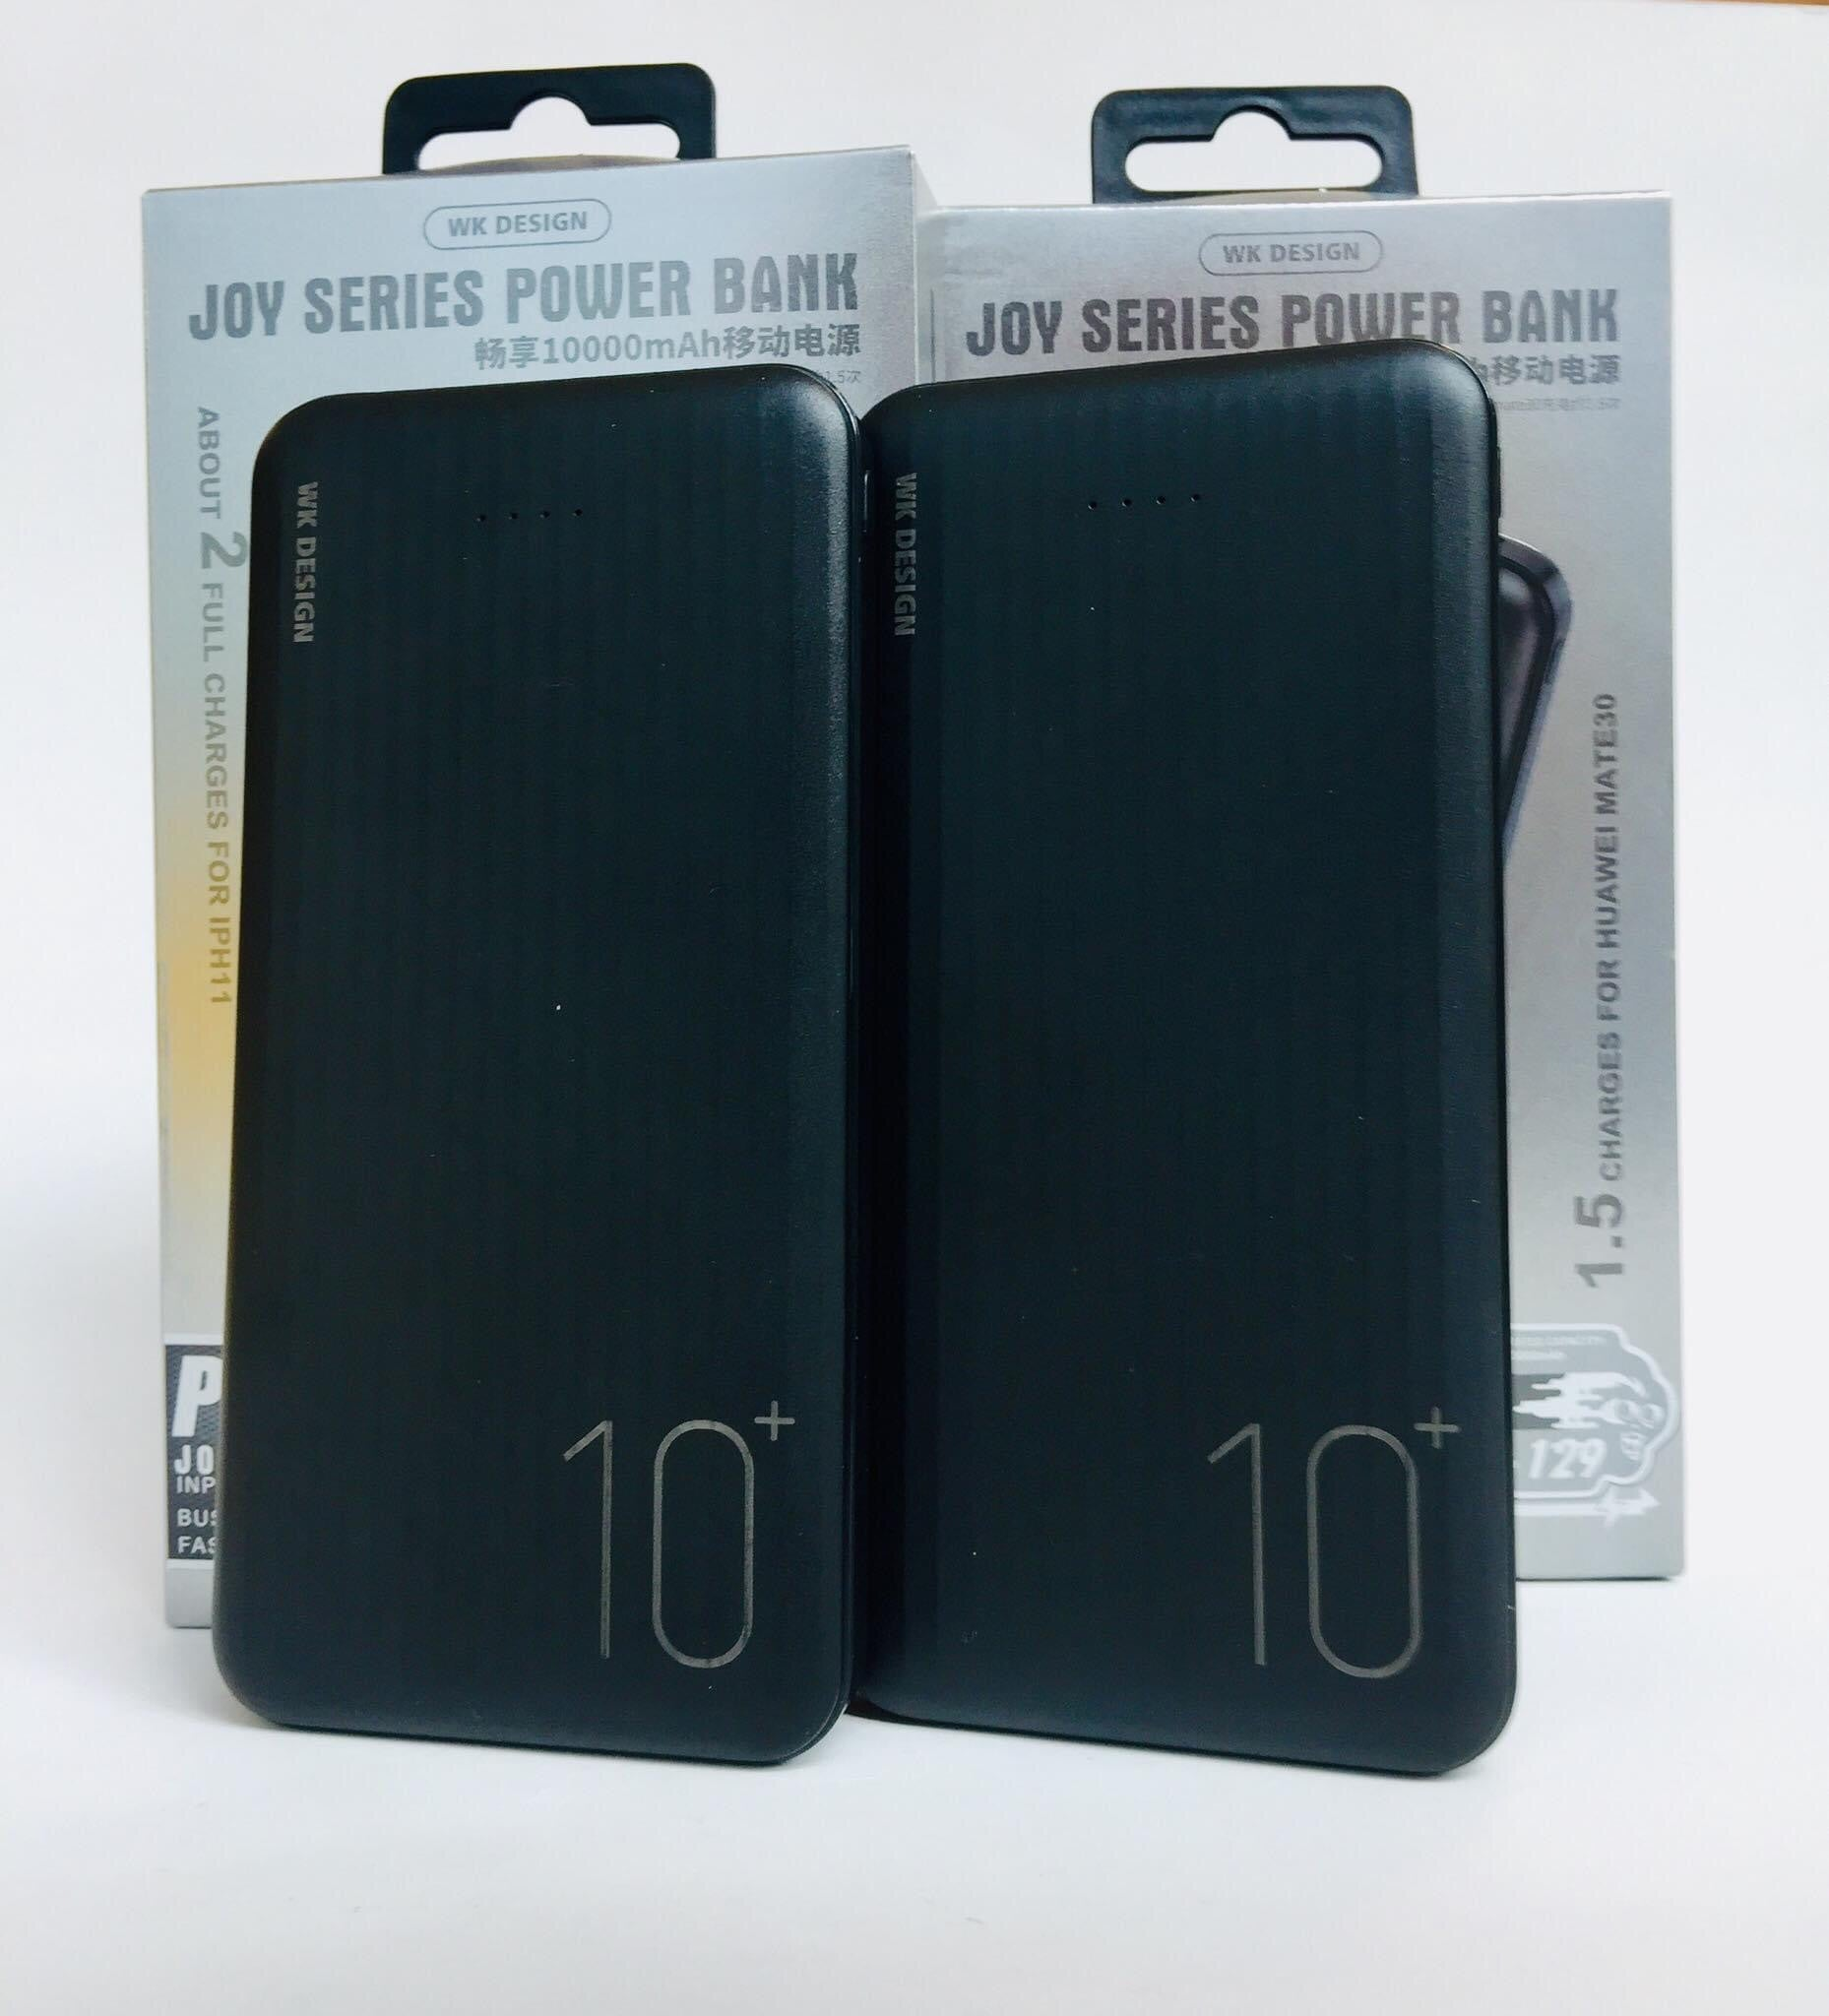 WP-129 JOY SERIES POWER BANK 10000mAh